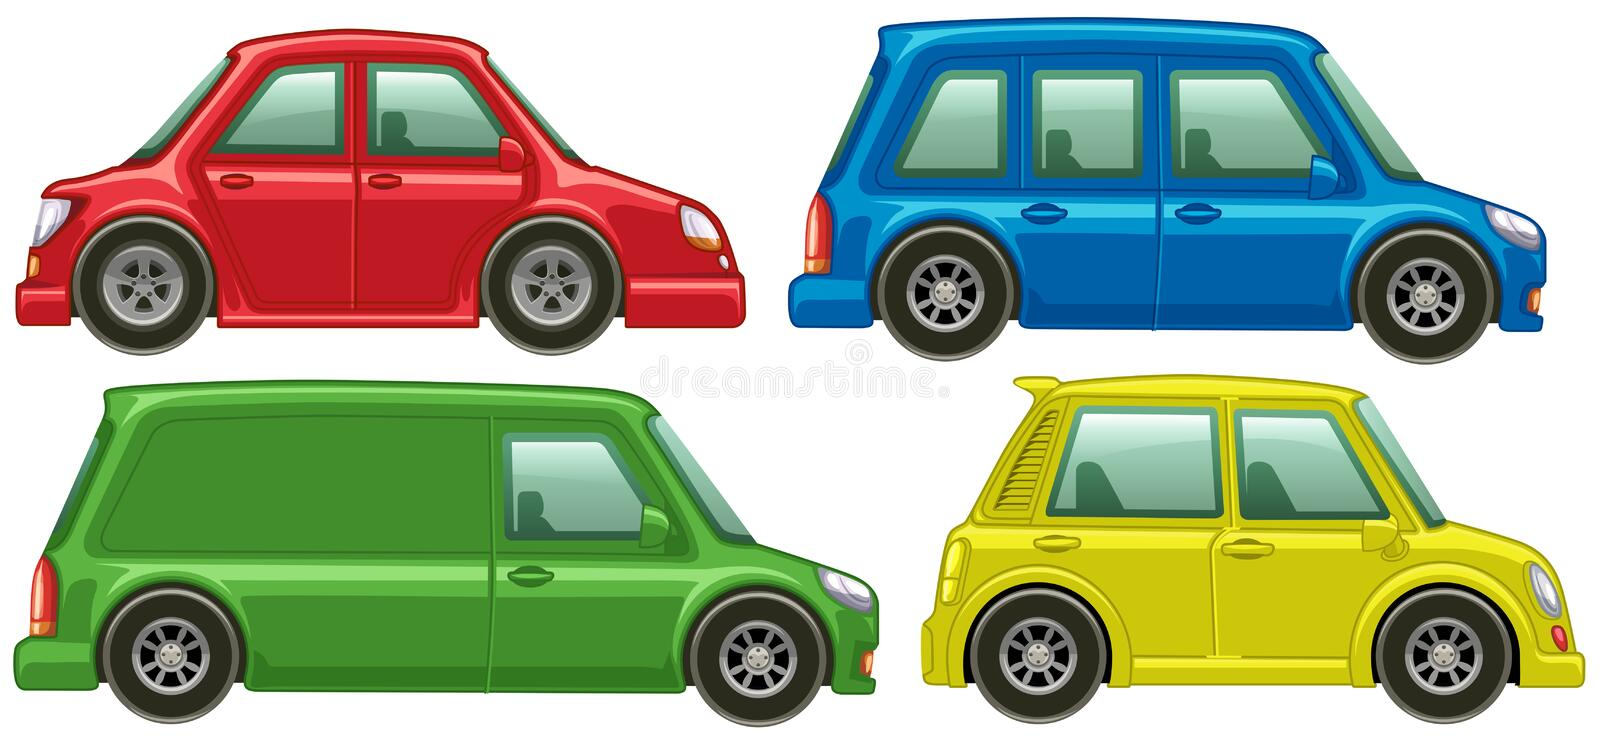 Different types of cars in four colors royalty free illustration